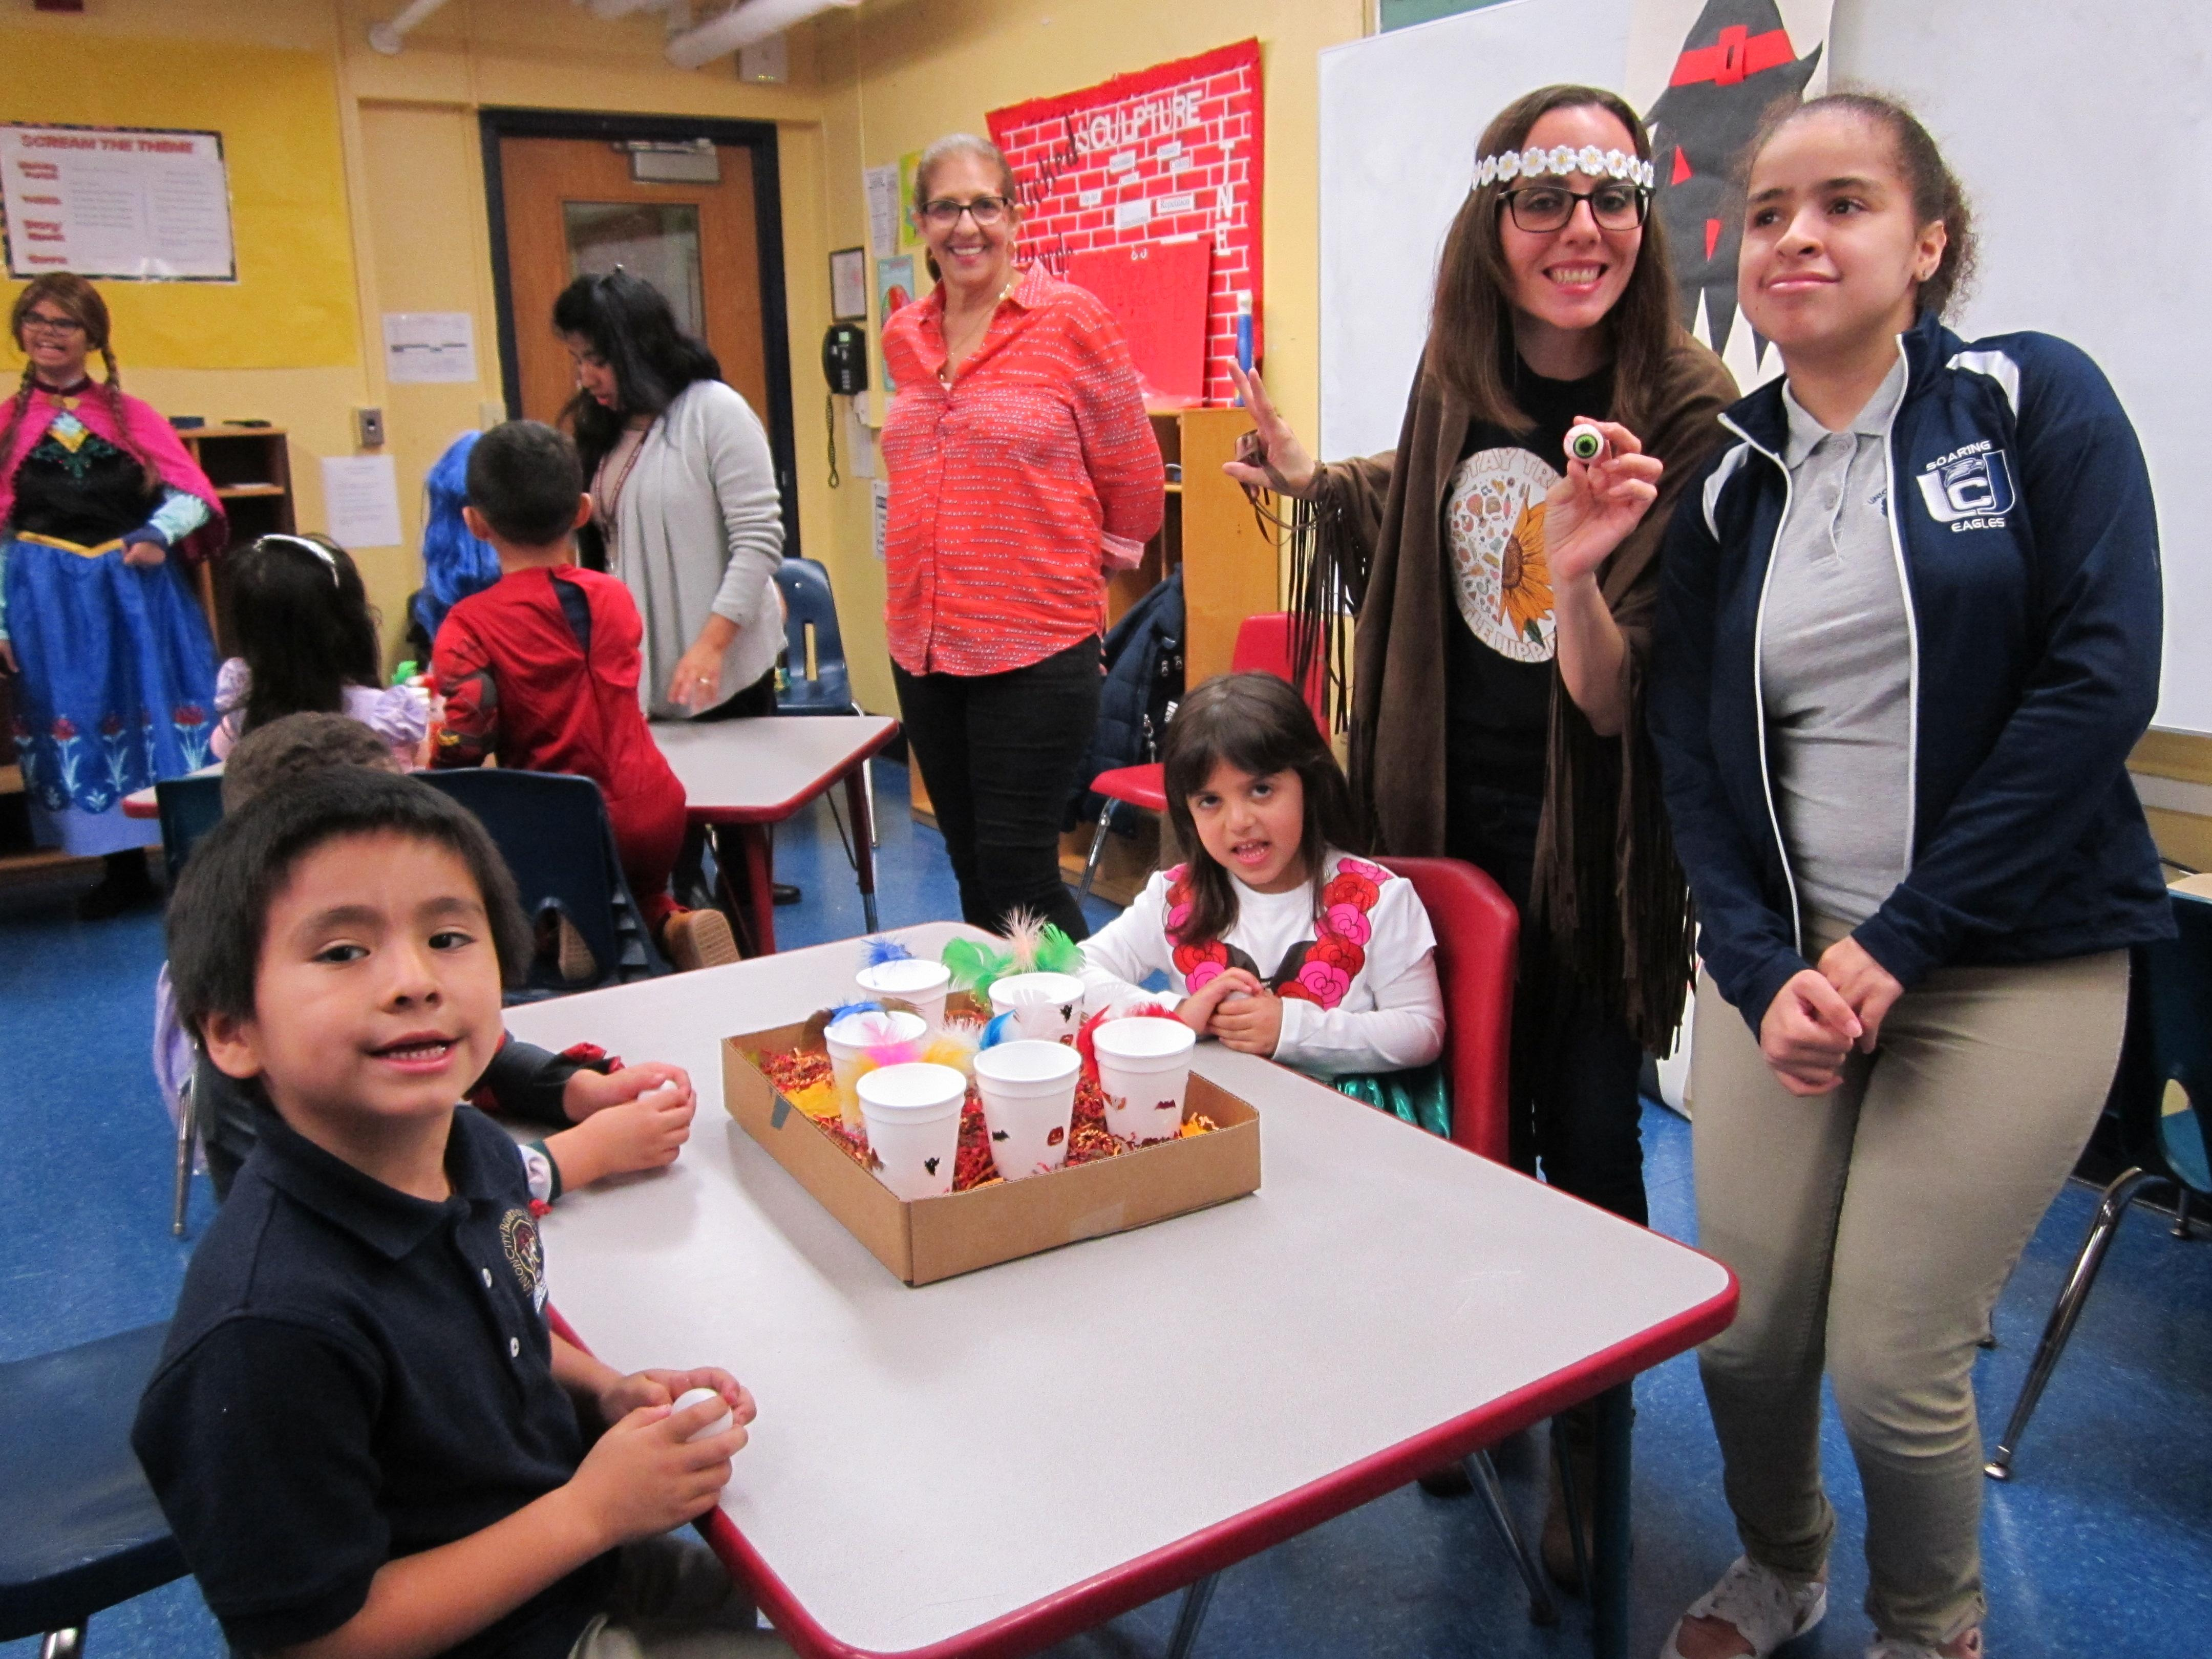 ms. Viera and one her female student holding a fake eyeball playing a dunking game with two kindergarten kids as an aide looks on